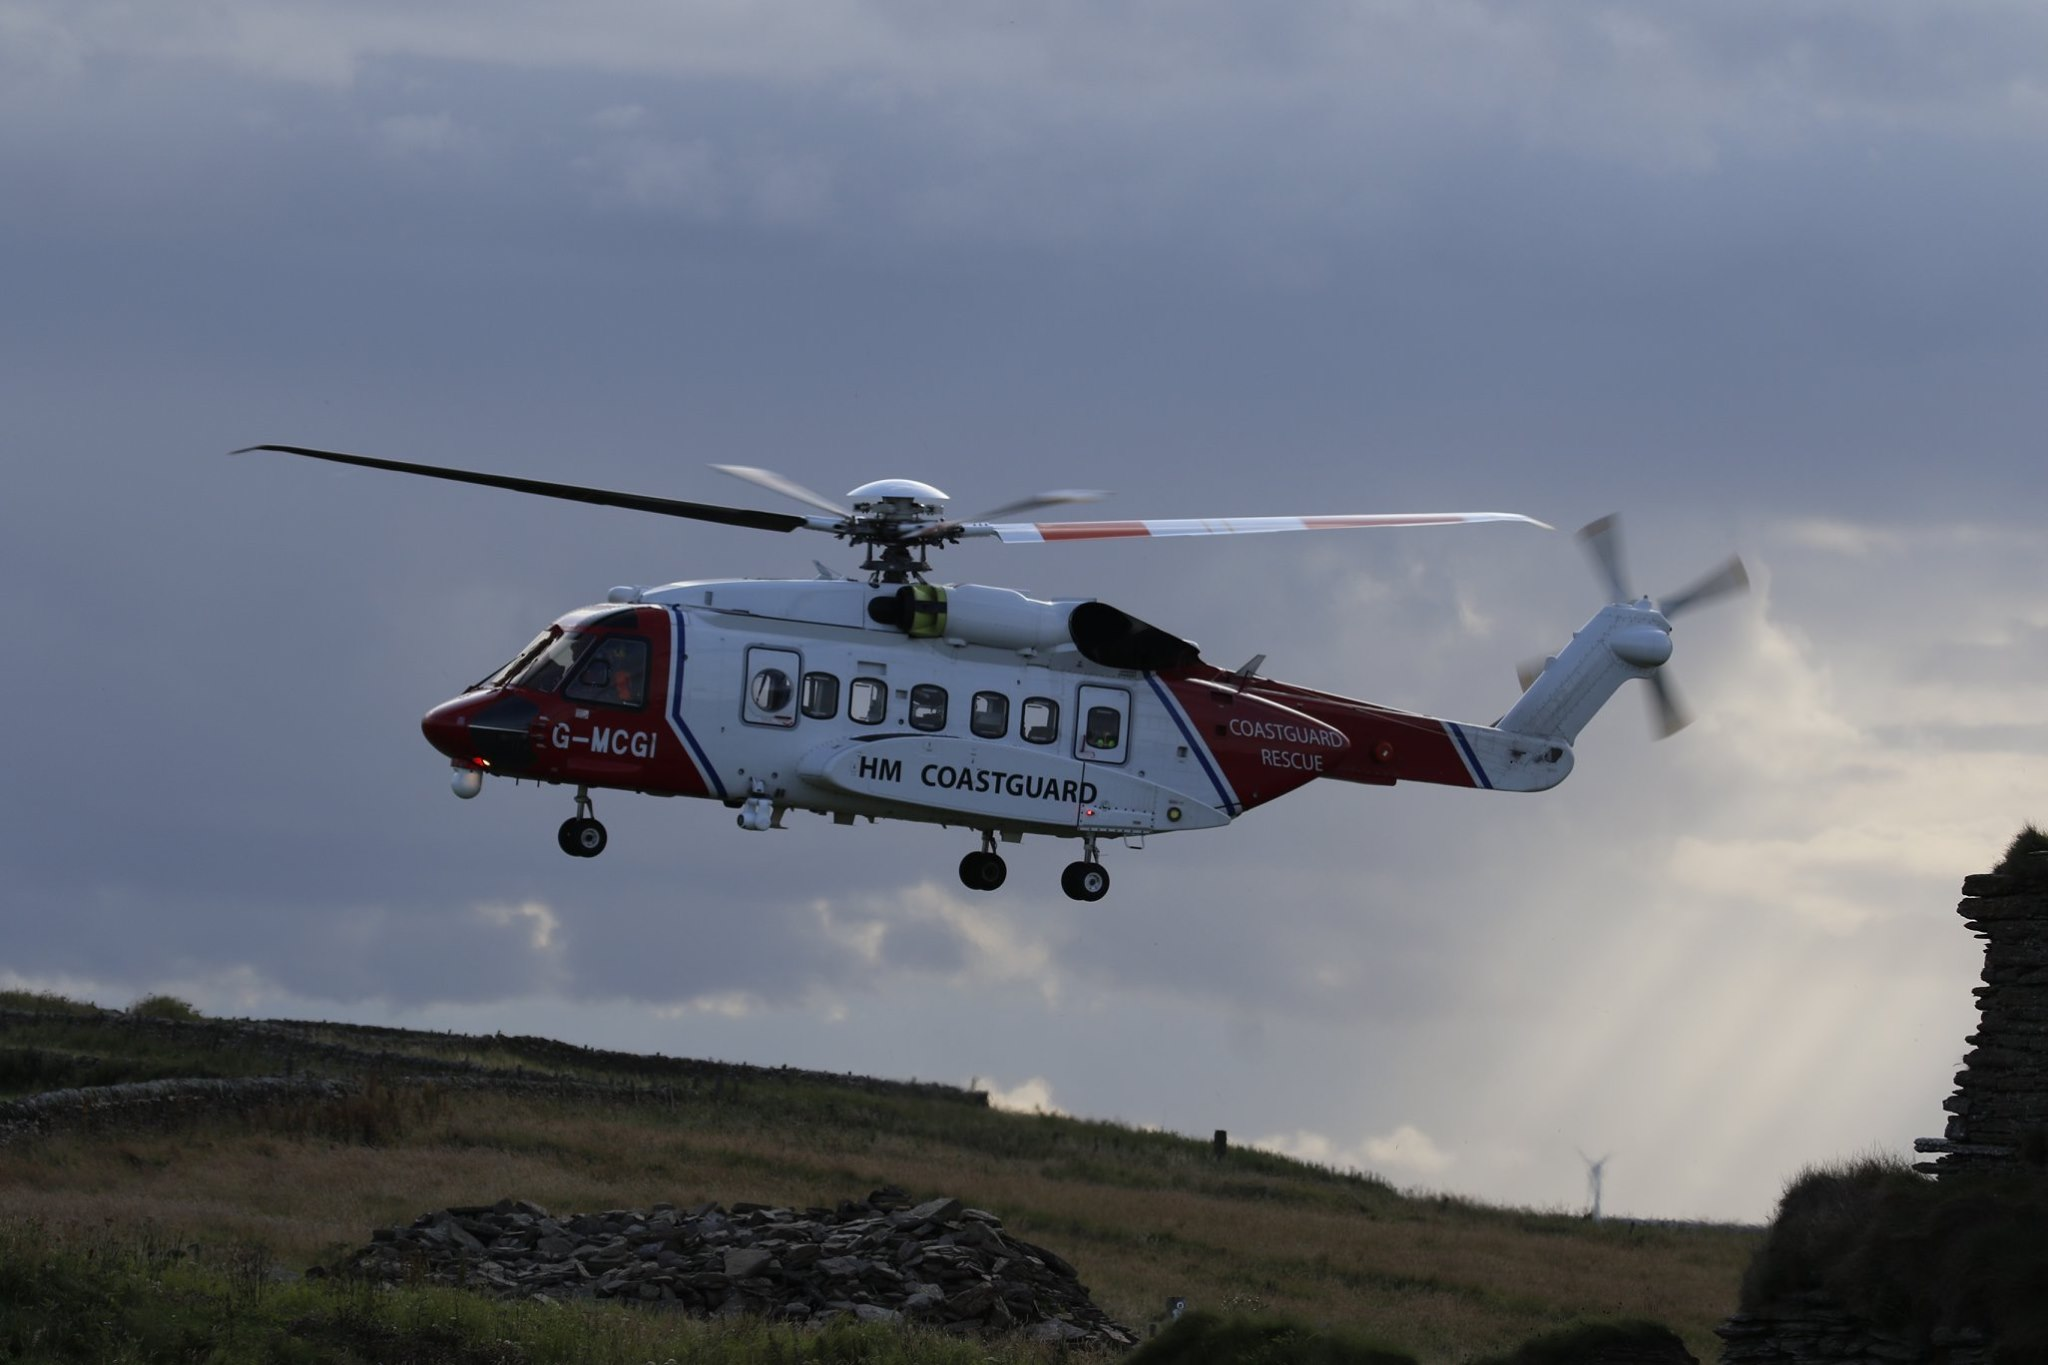 Coastguard helicopter Rescue 900 from Sumburgh